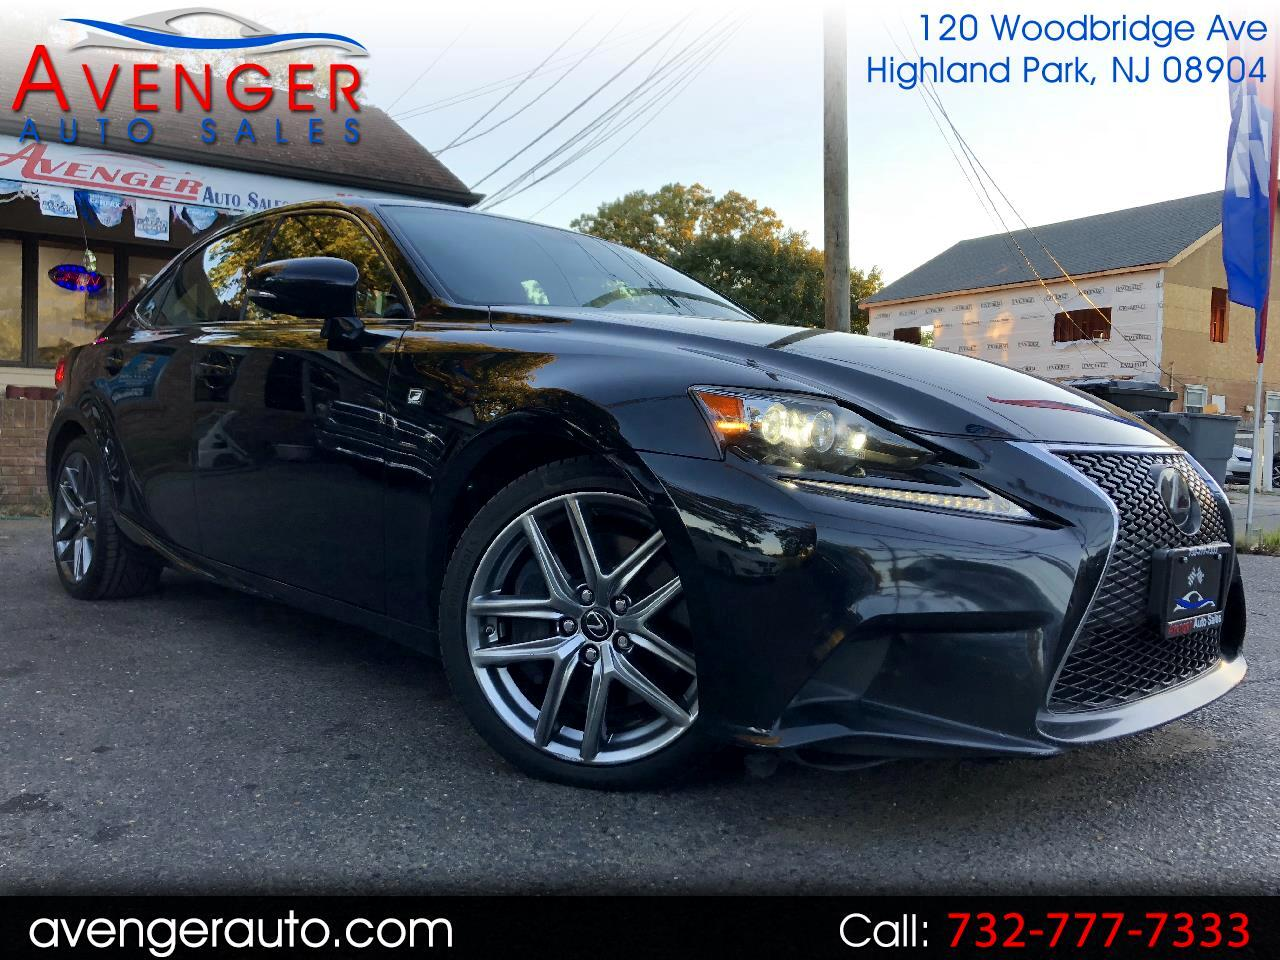 2016 Lexus IS 350 F-SPORT AWD